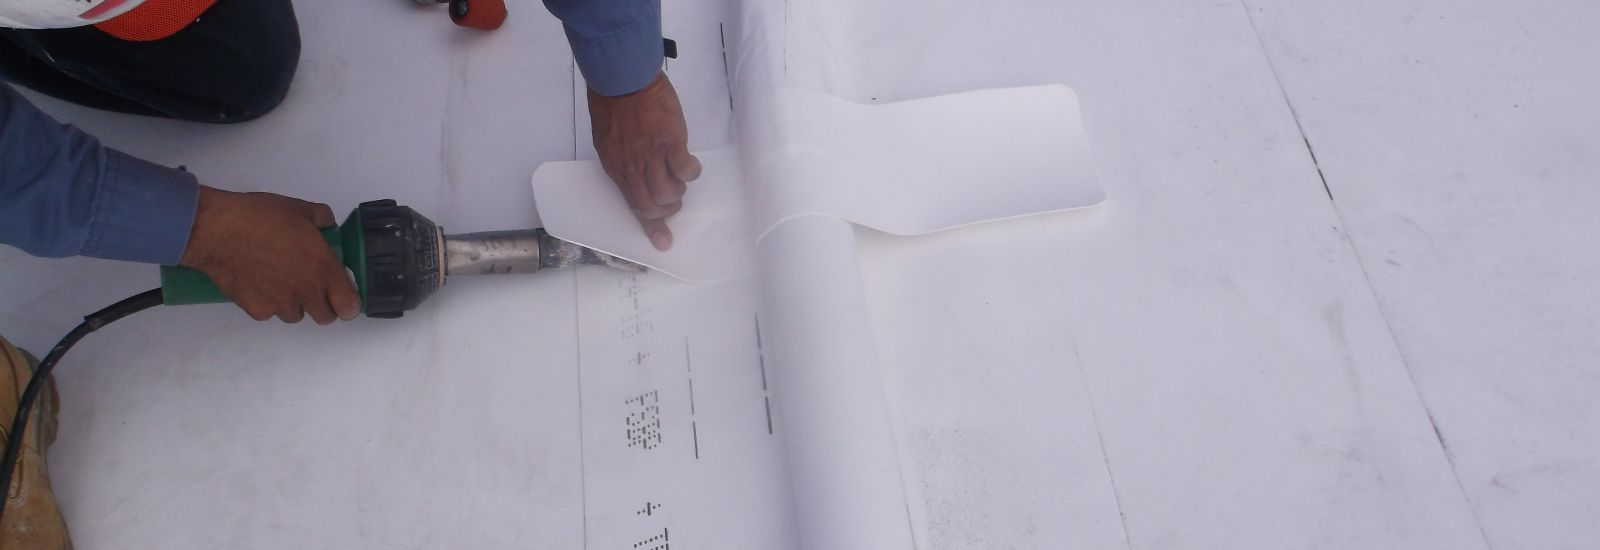 Roofsaver Maintenance Plans Latite Roofing